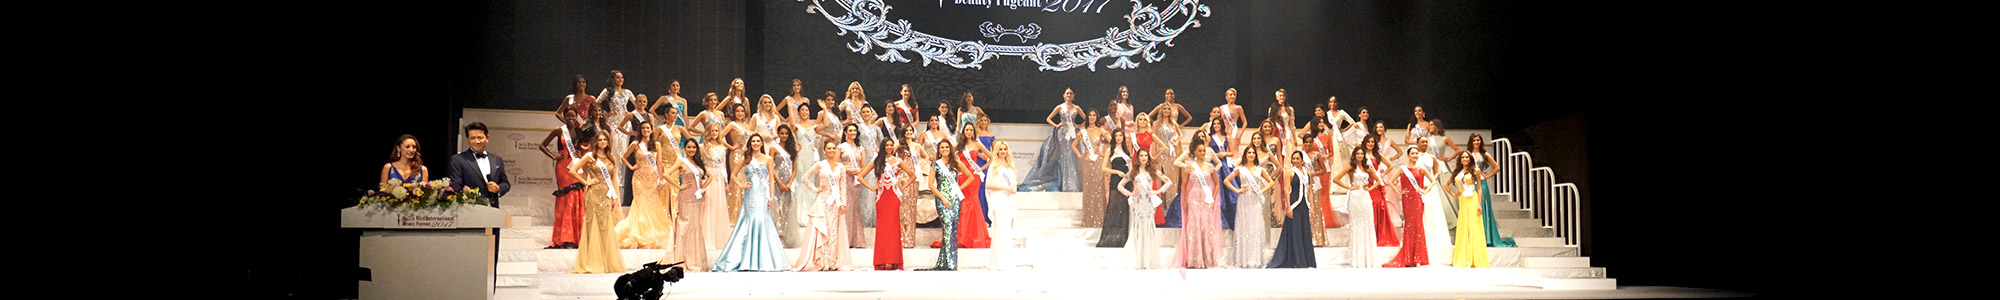 MISS INTERNATIONAL ONLINE VOTING